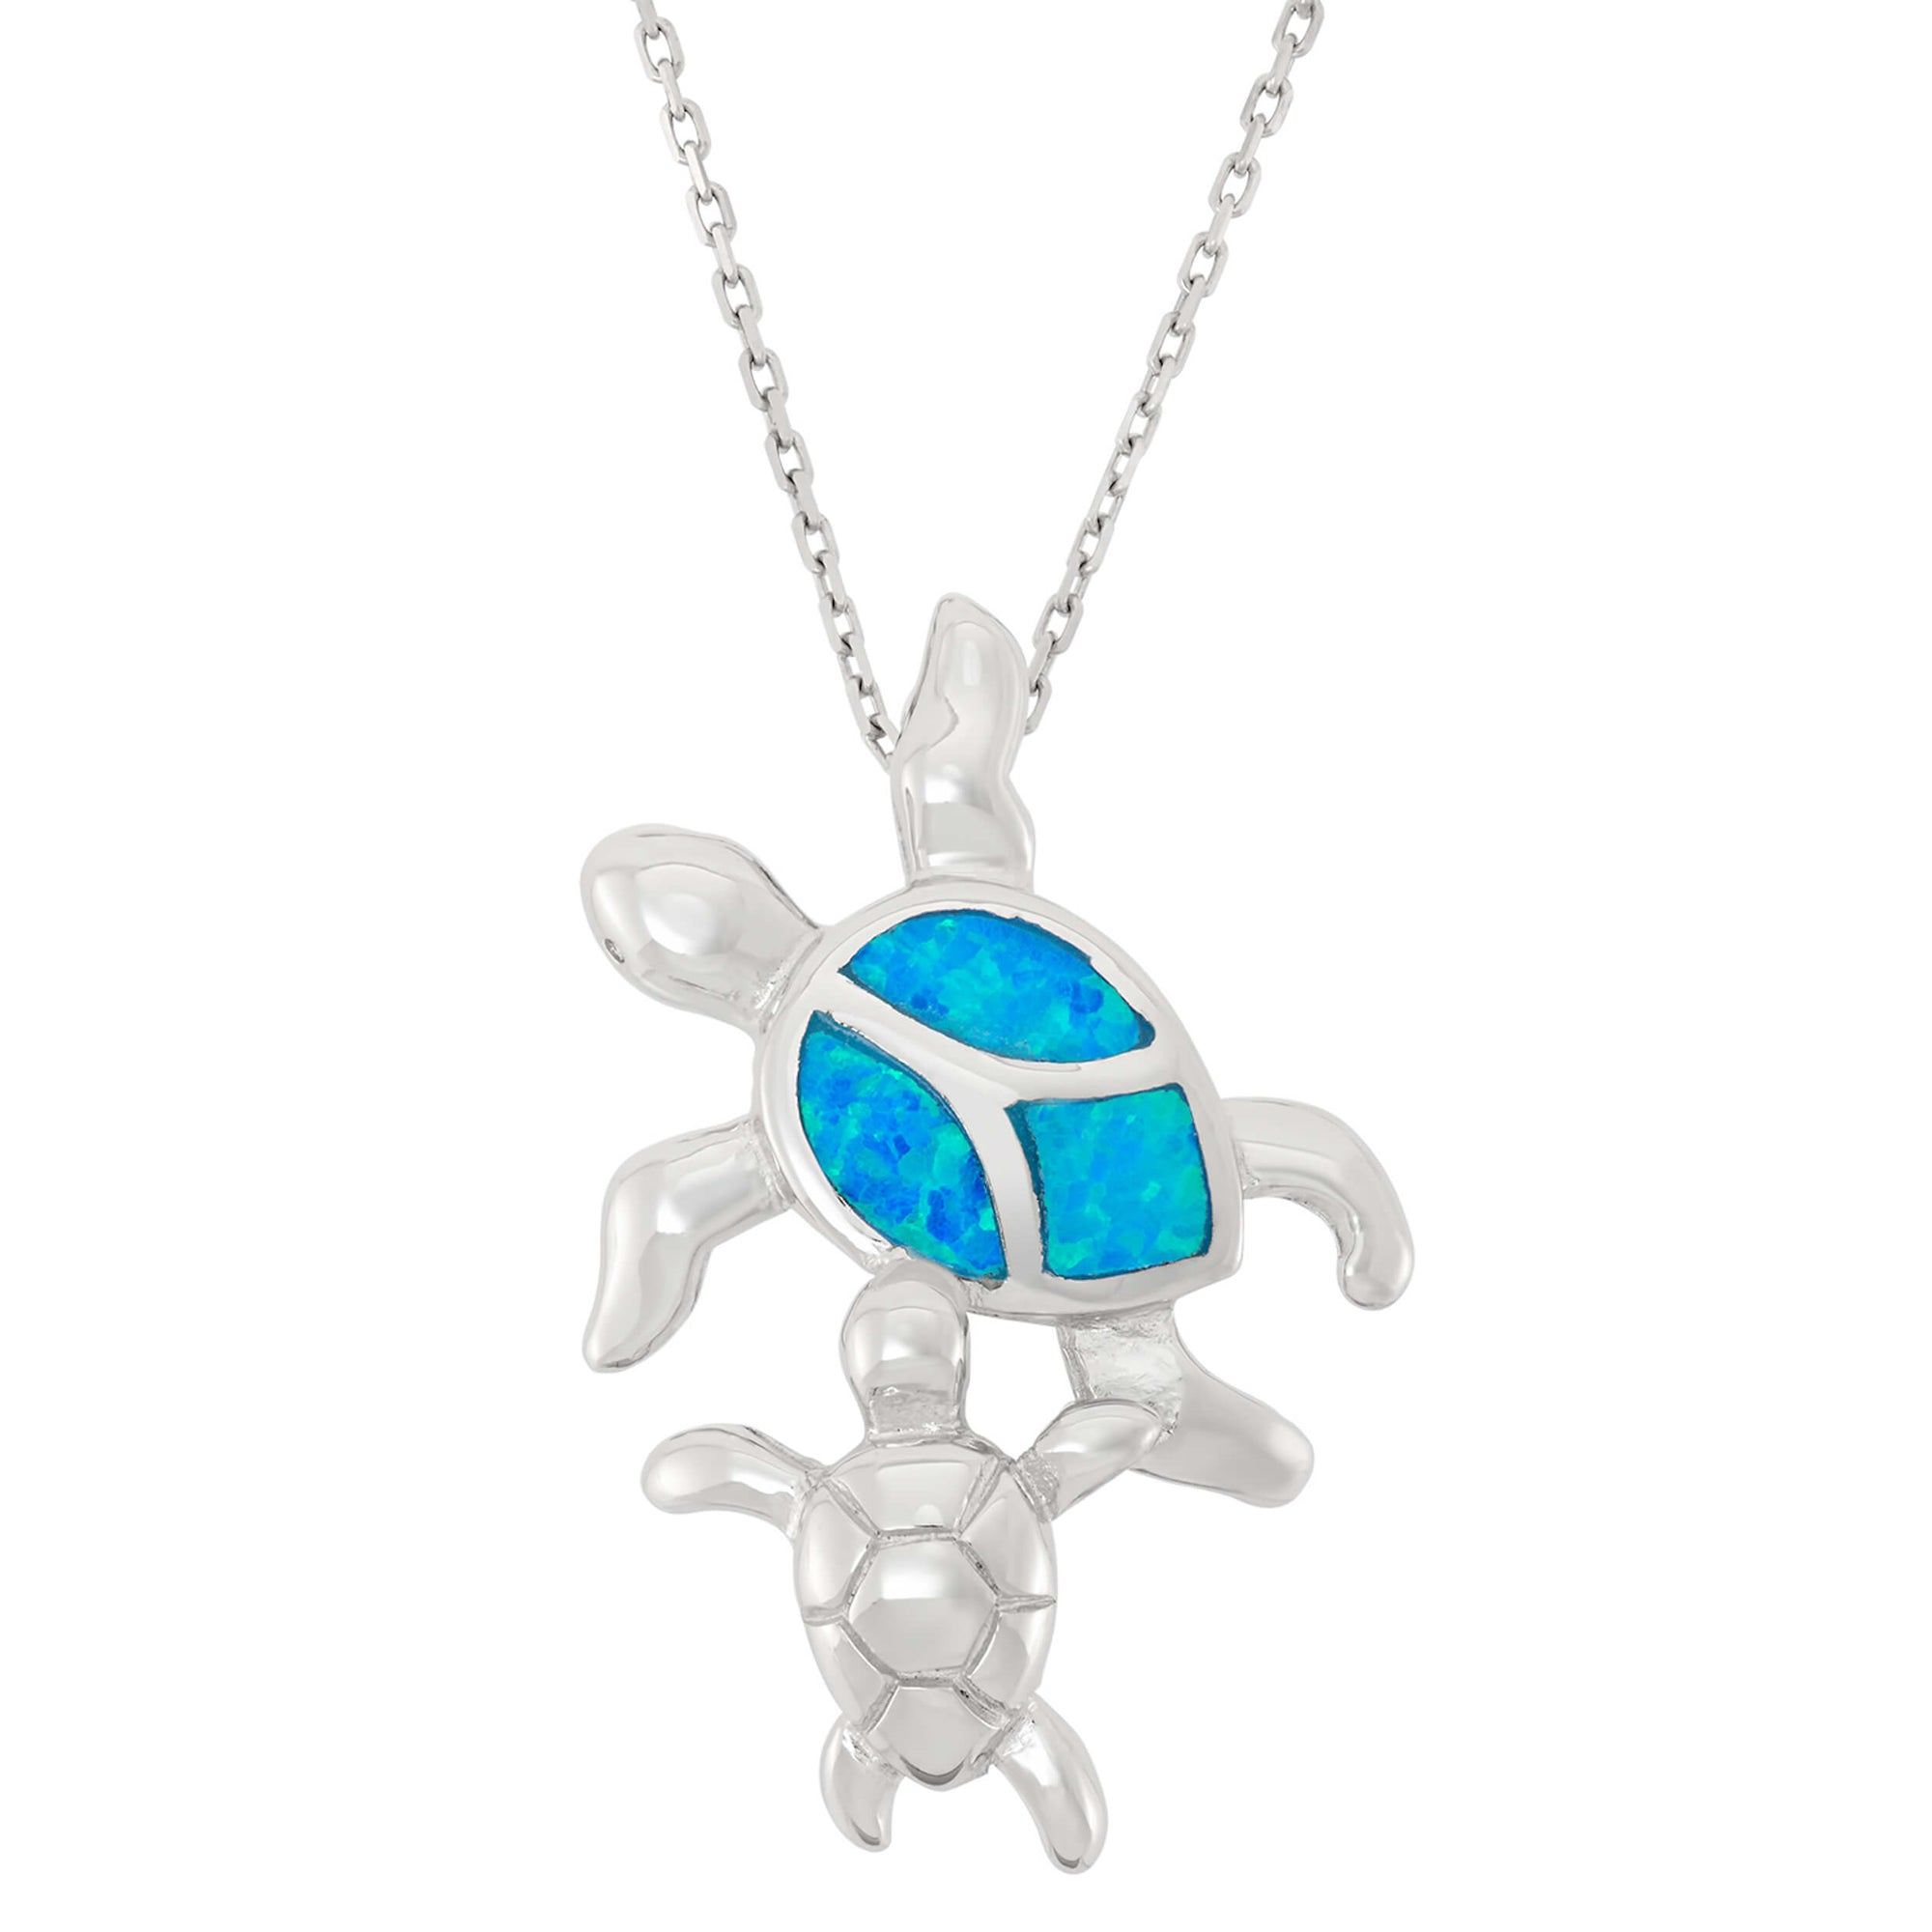 preciosa la sterling opal on over watches product shipping jewelry free turtle blue orders overstock necklace silver